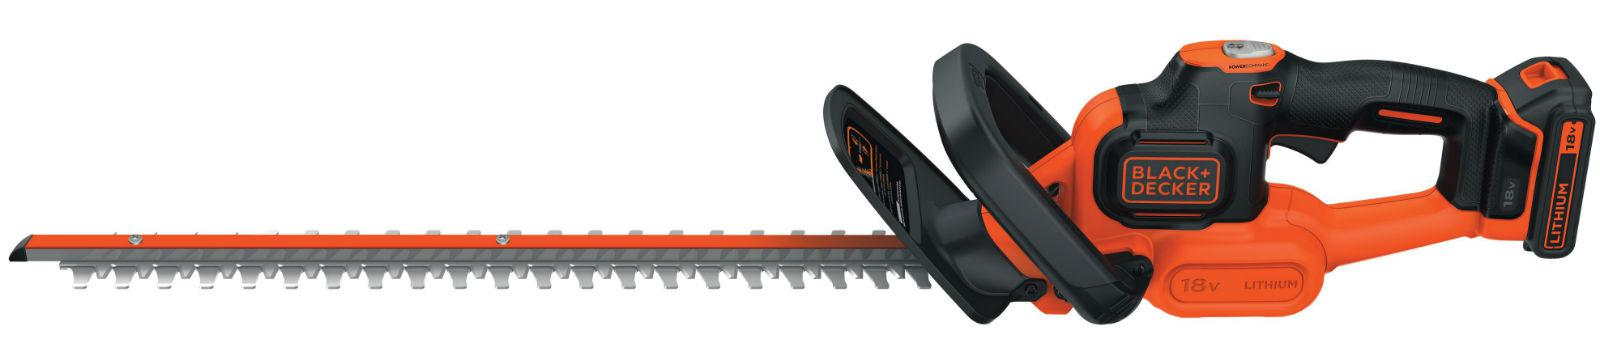 Кусторез Black & decker Gtc18452pc-qw